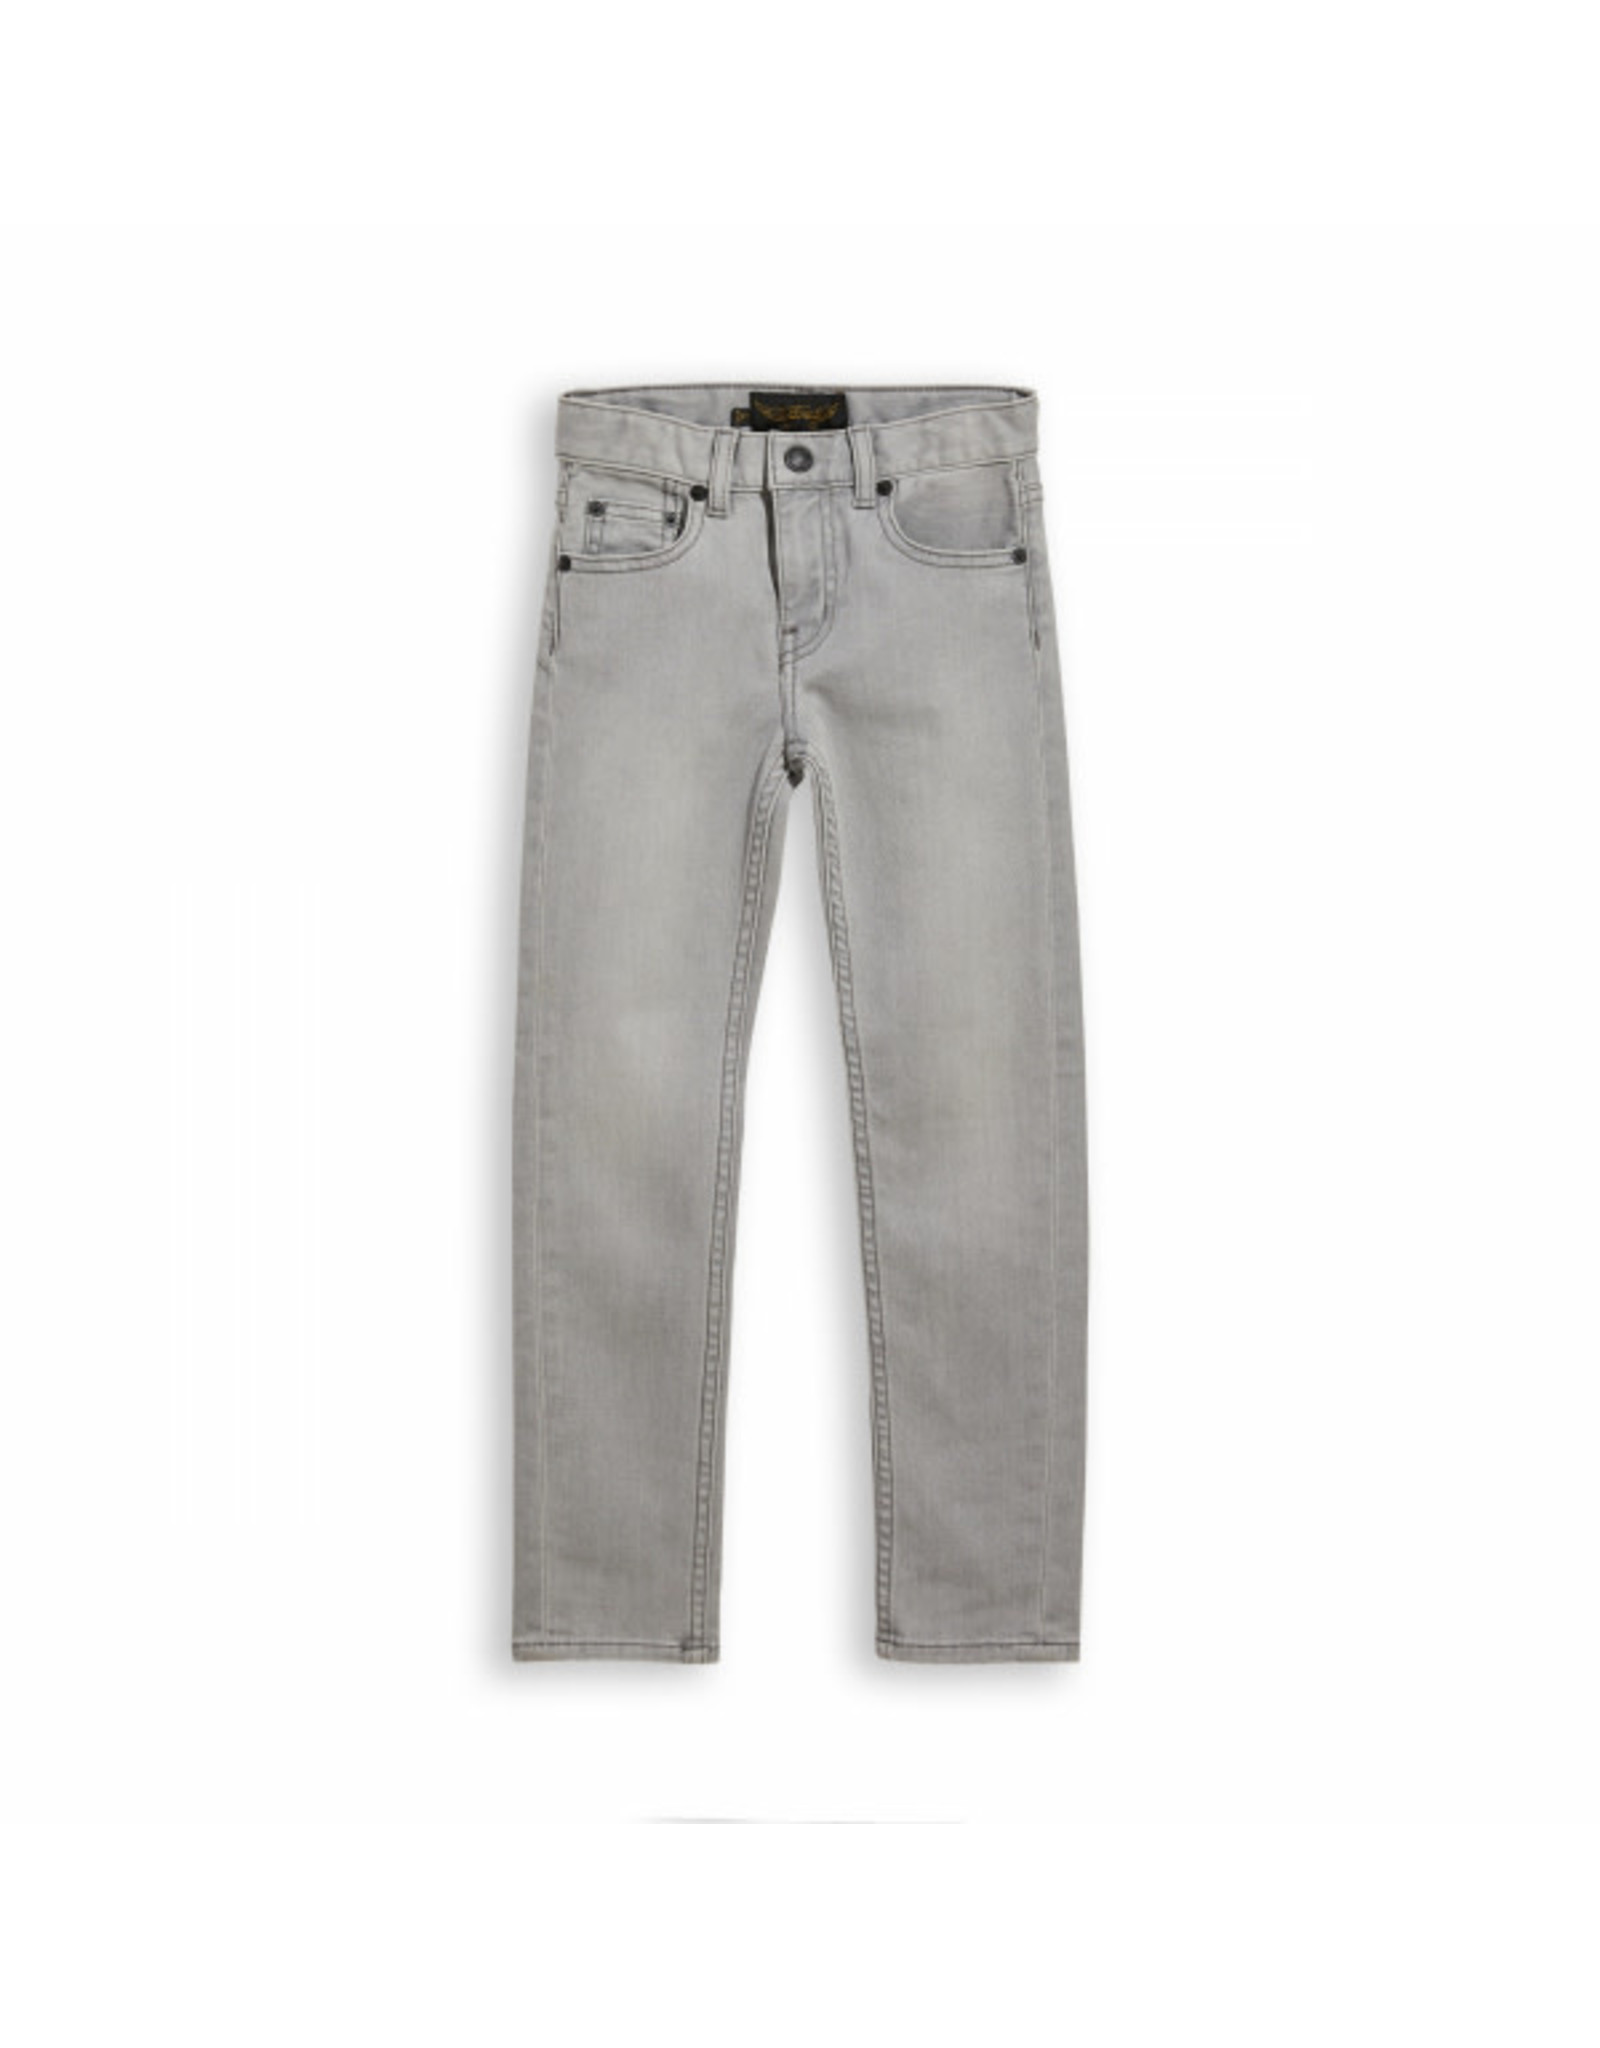 FITN Icon slim fit jeans